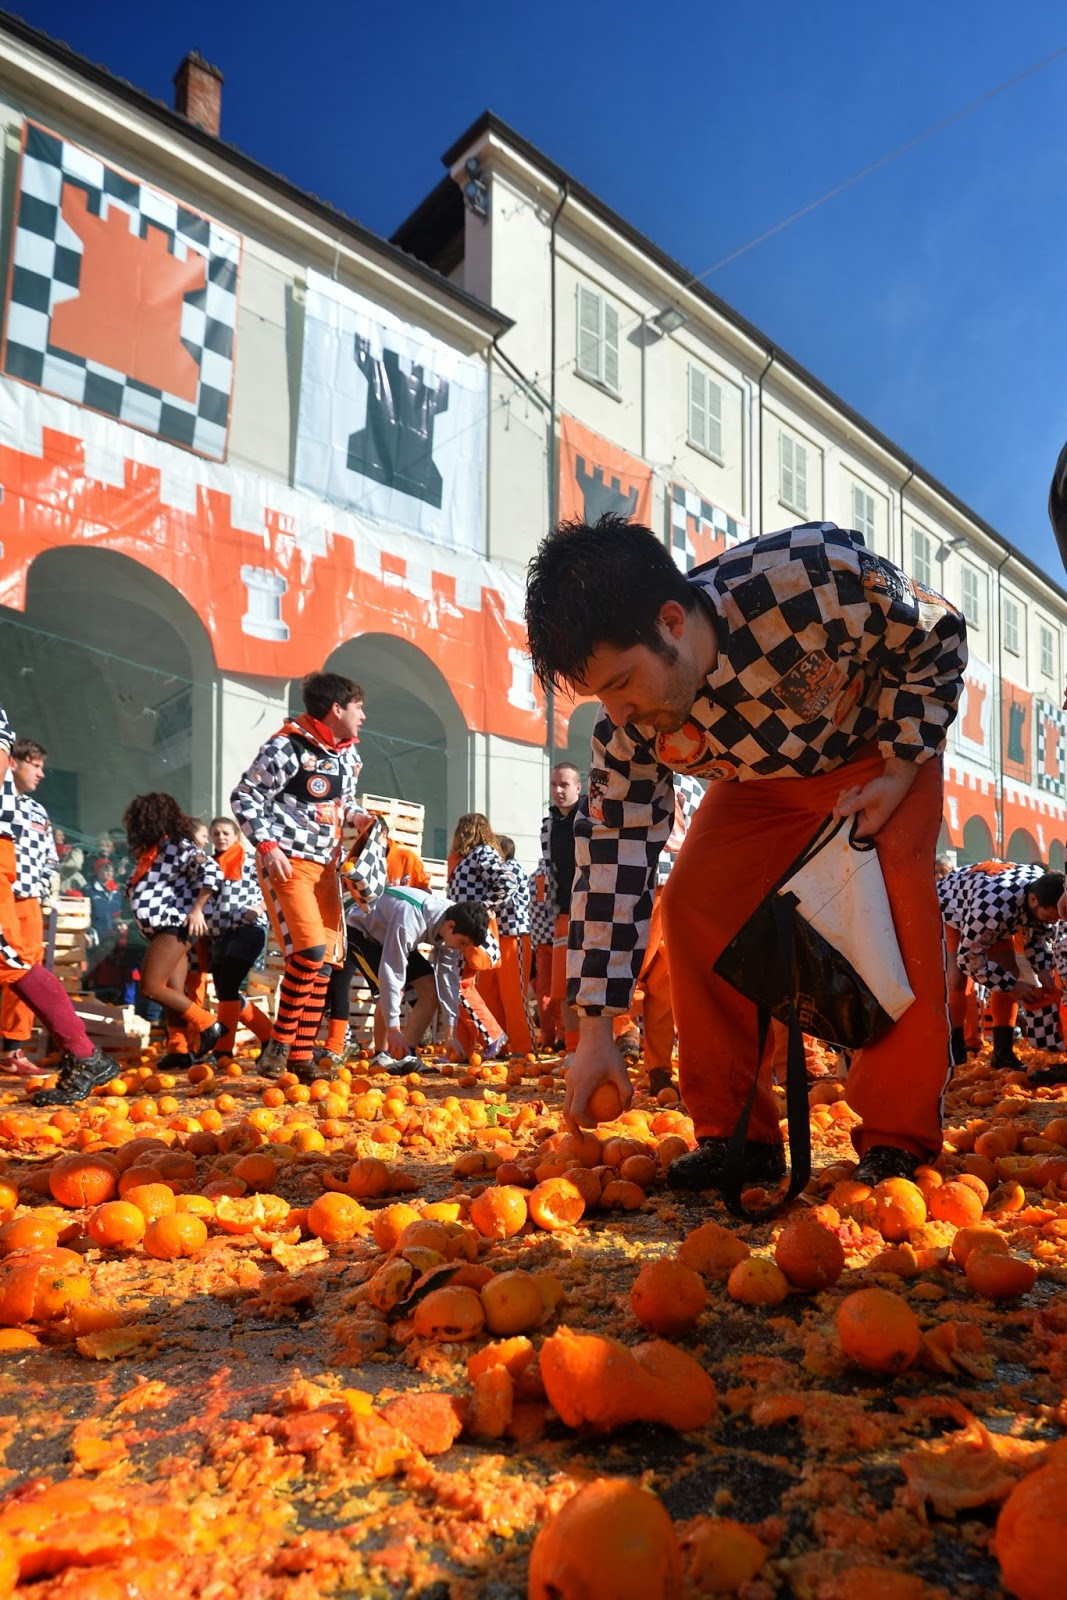 Food Fight in Italy - Battle of Oranges HD Pictures